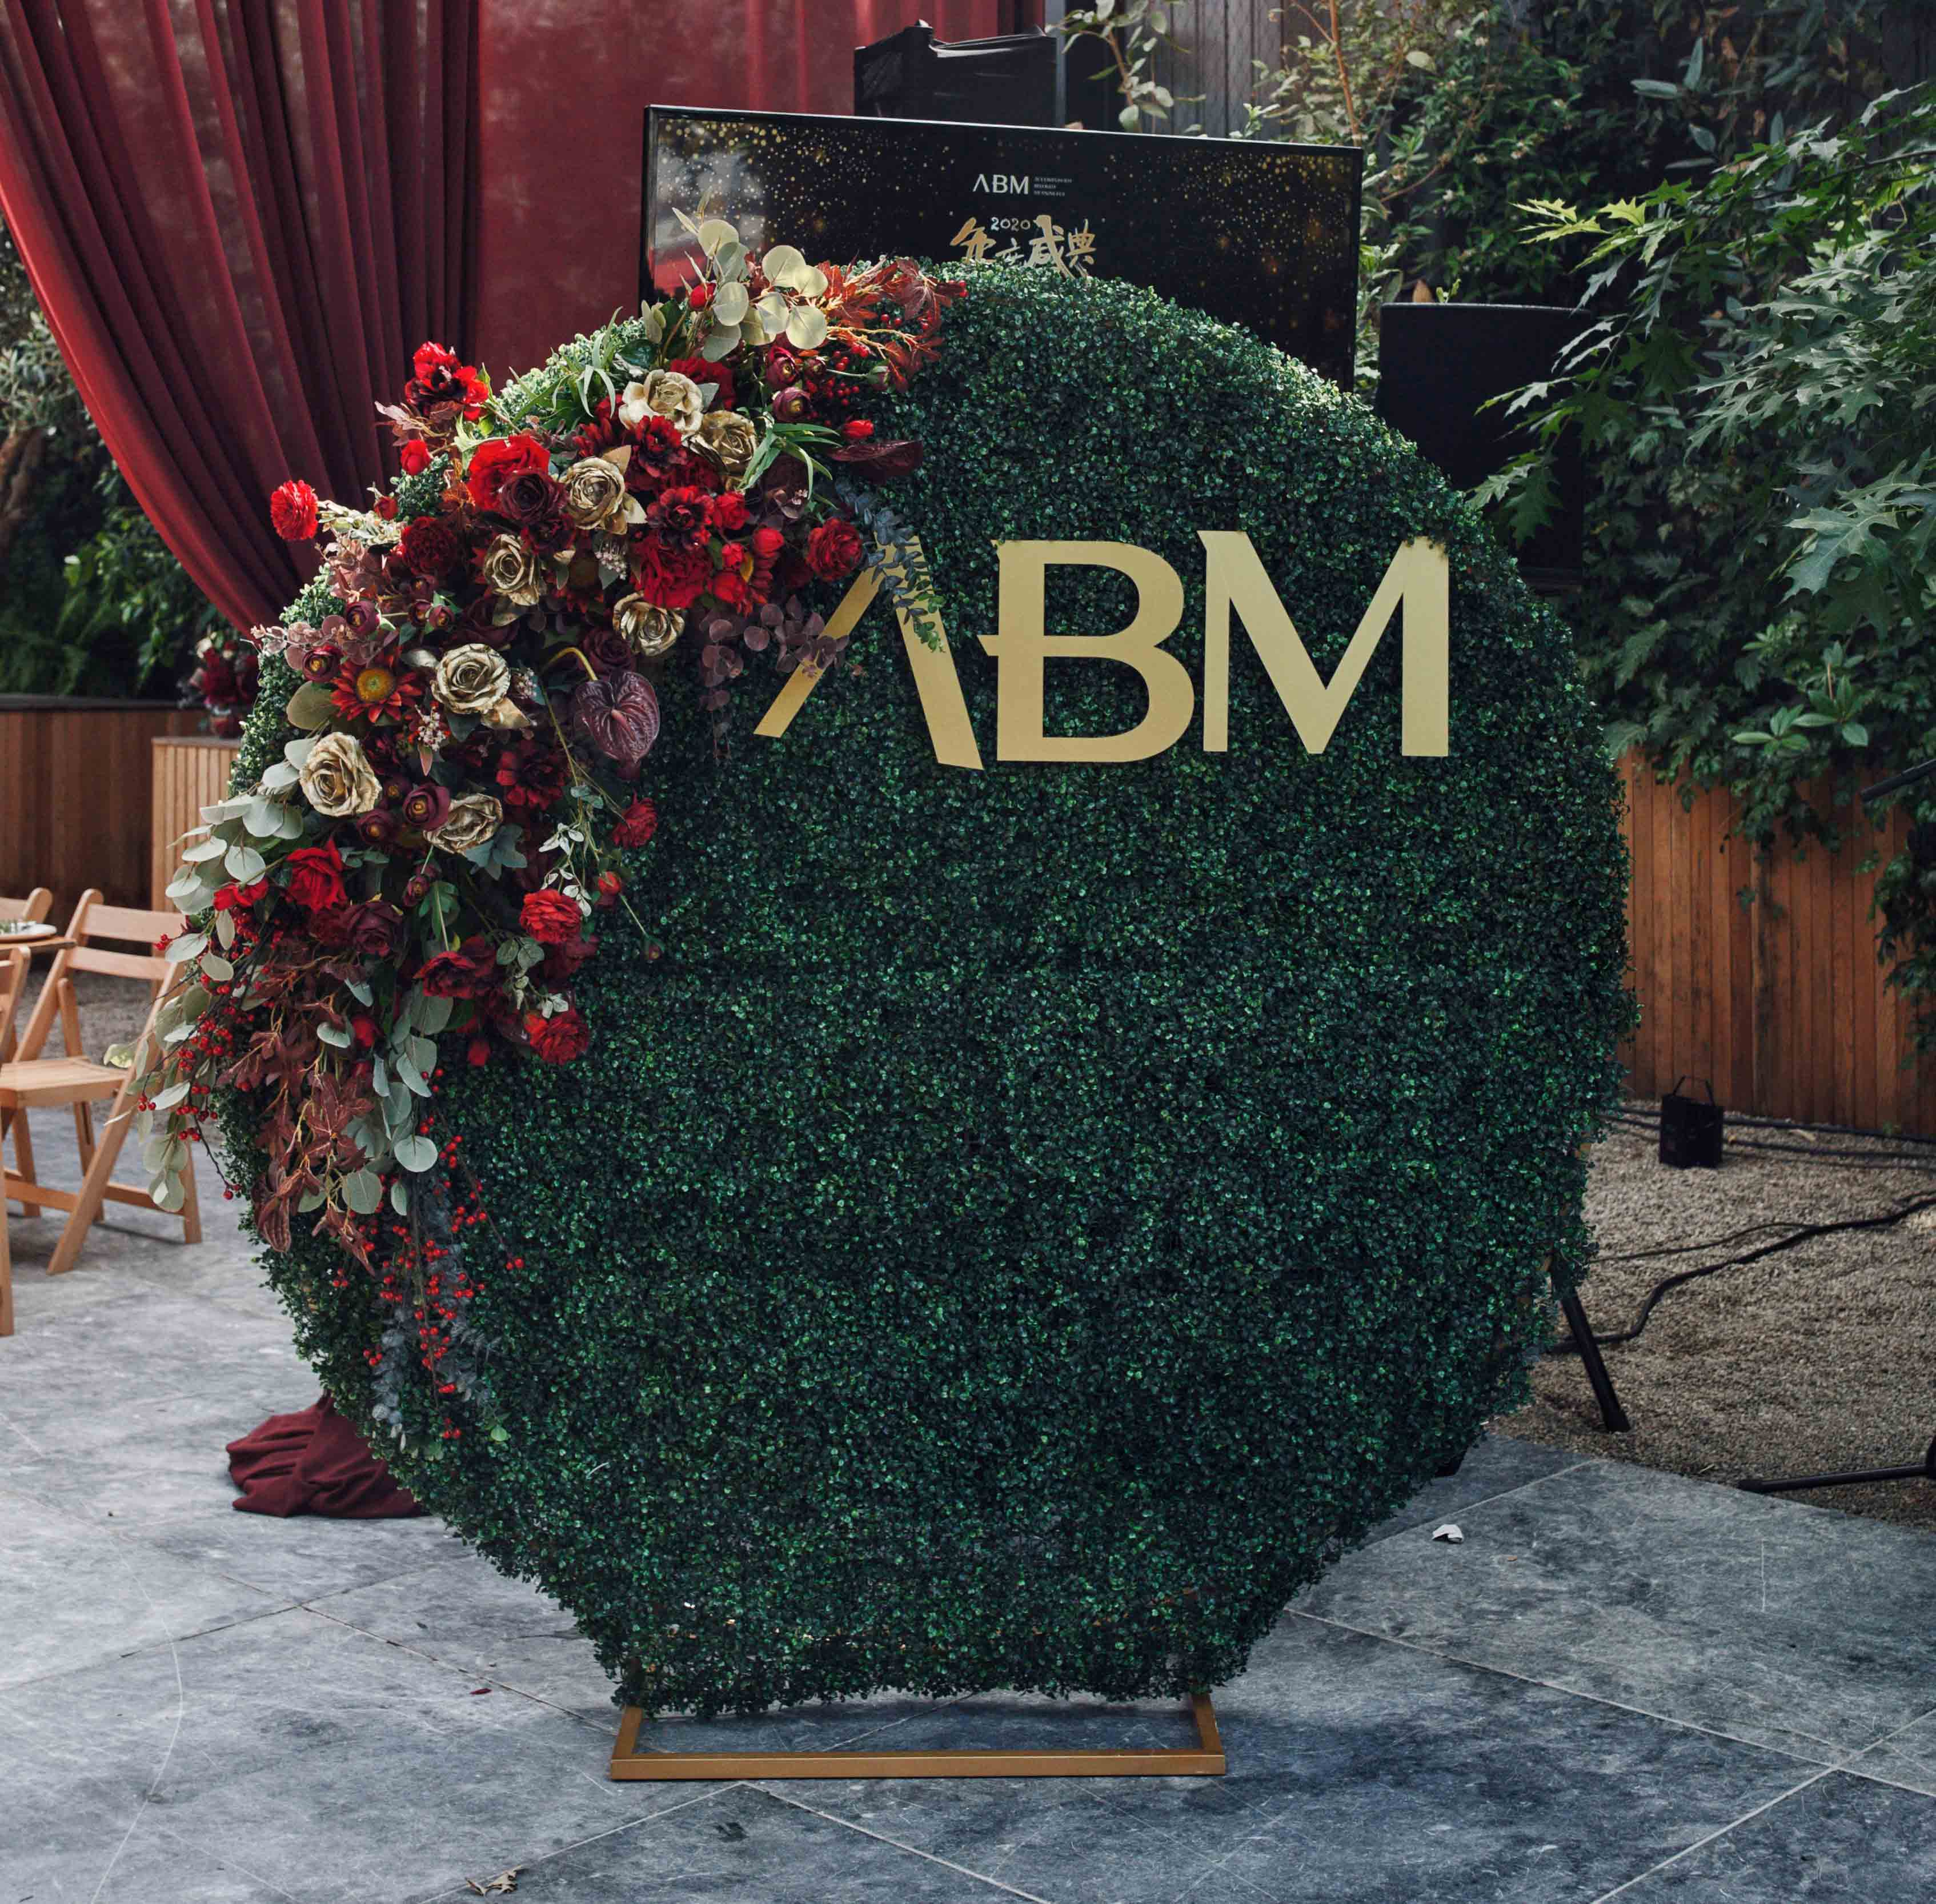 Hedge Backdrop by Luxe Dream Event Hire / Flowers by Luxe Dream Floral Studio for ABM